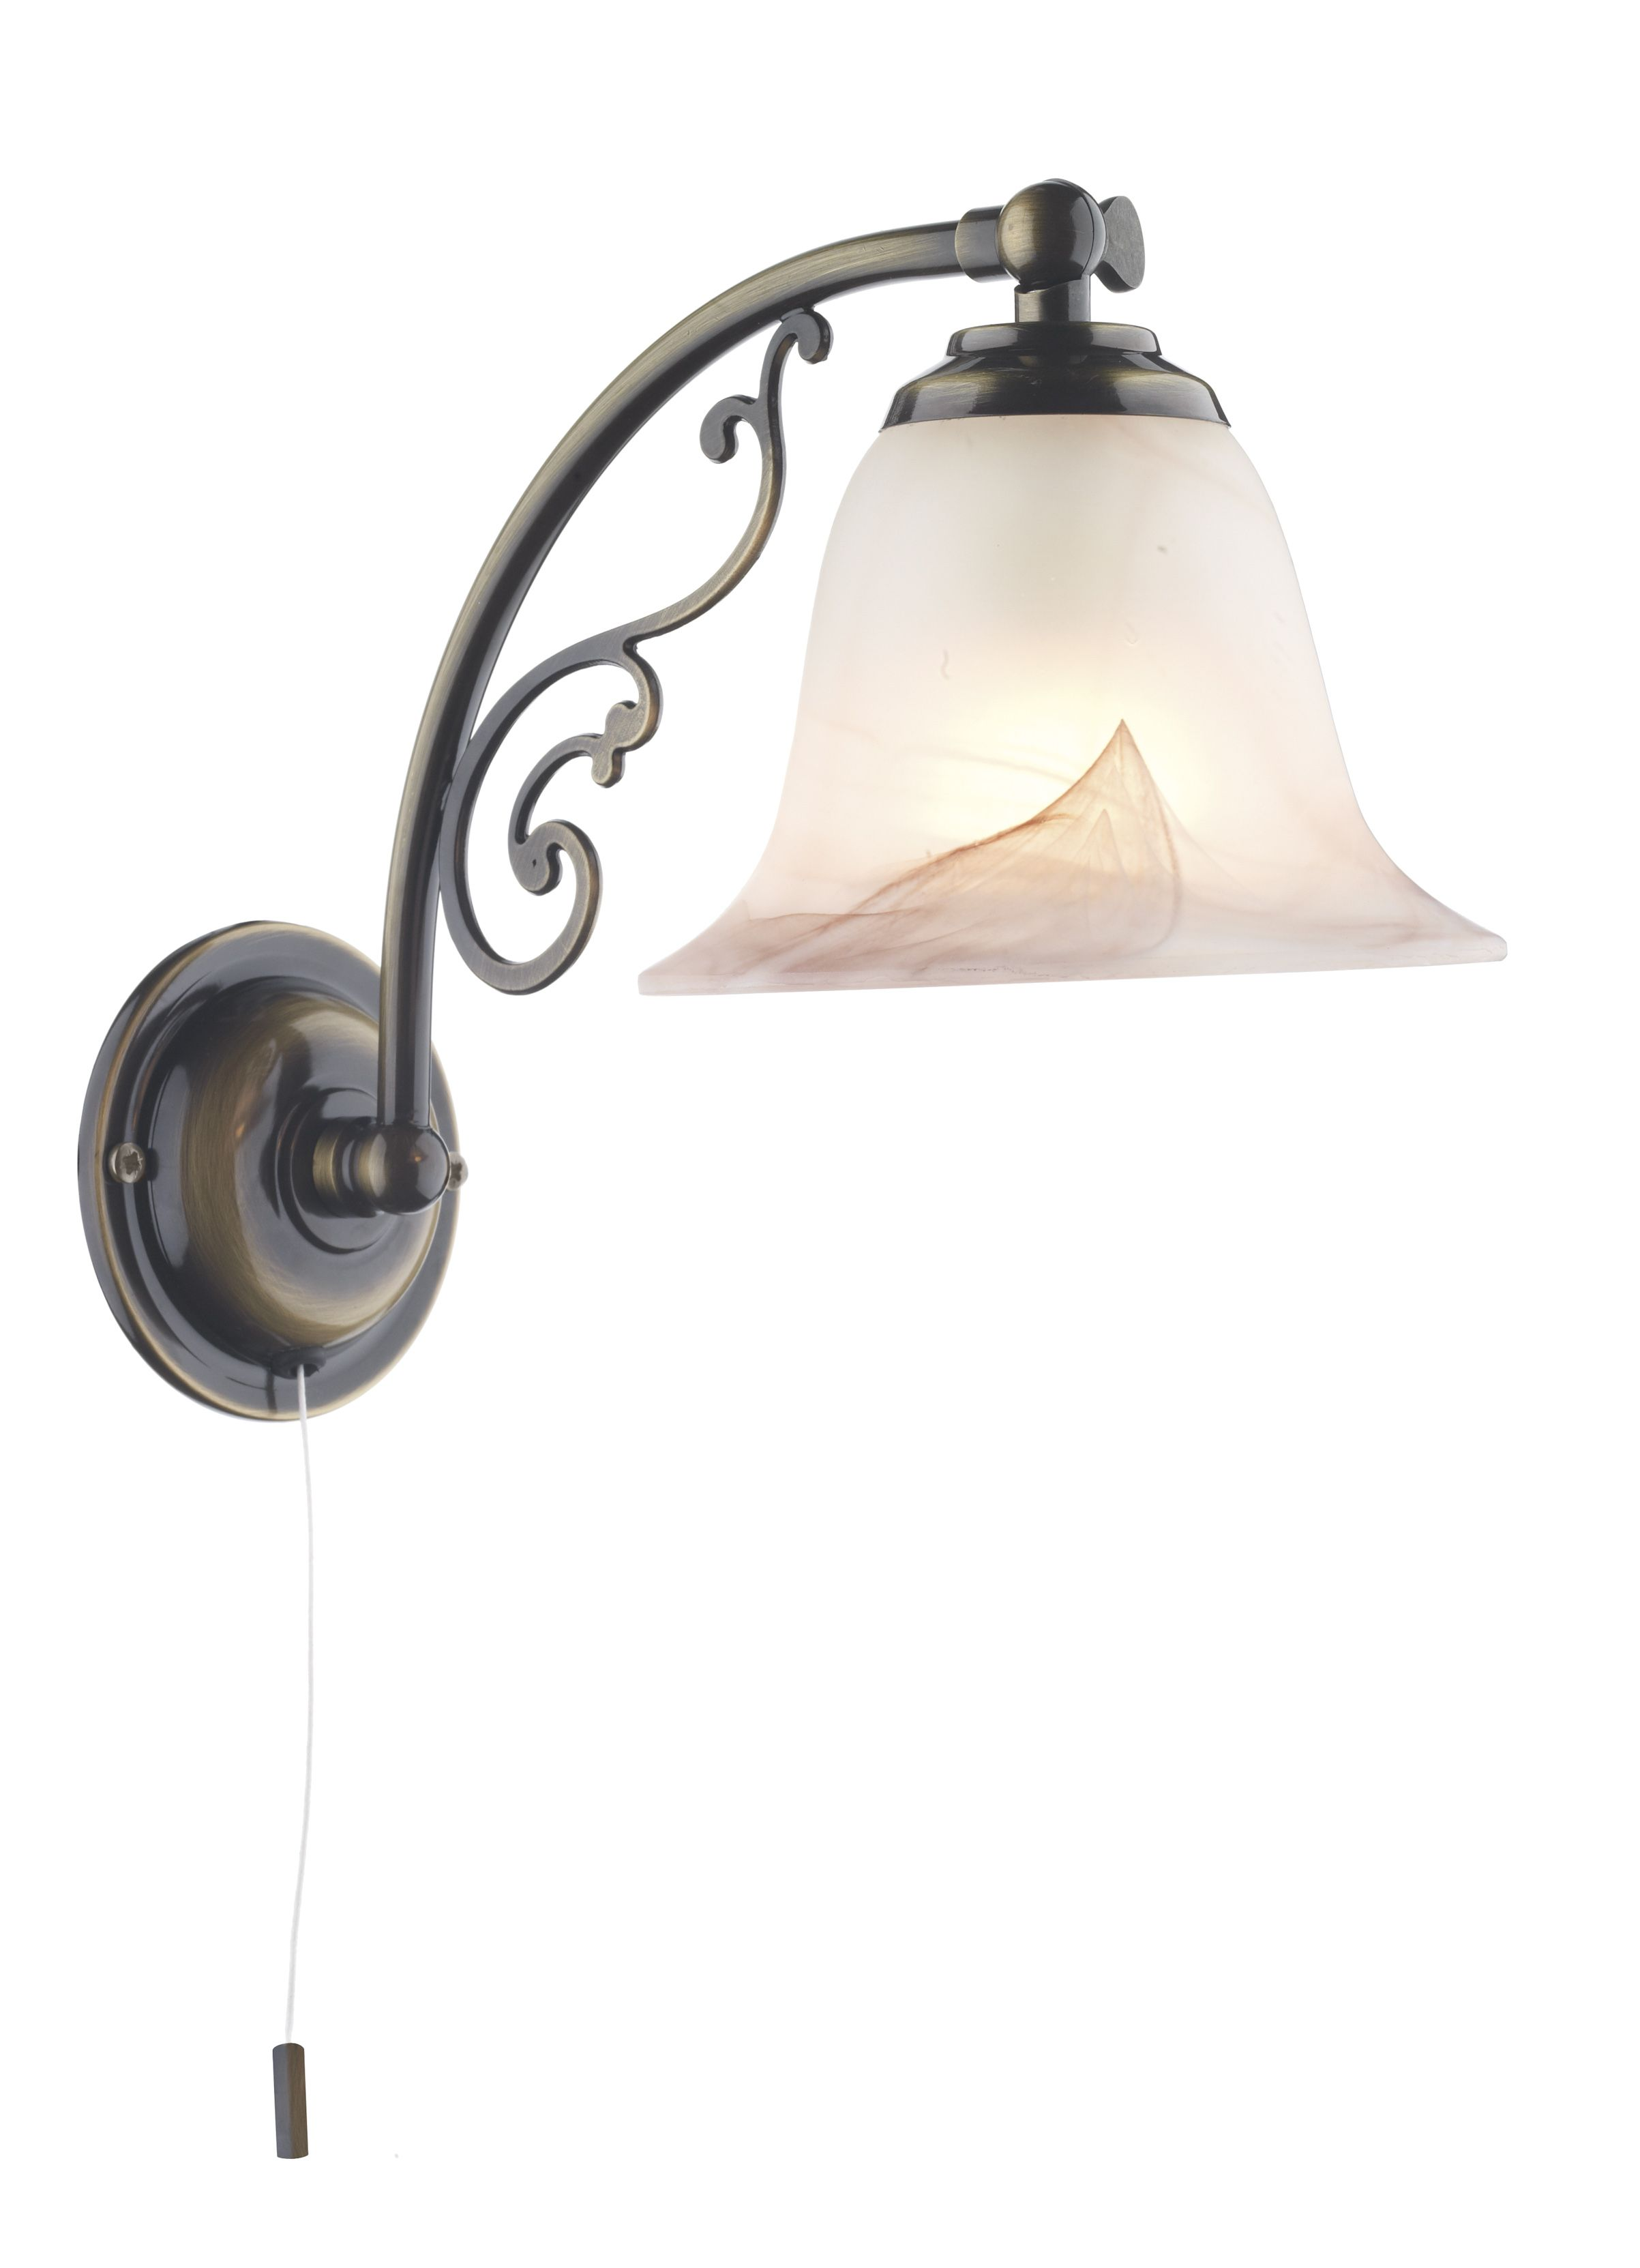 Decoration Wall Lamps With Cord Target With Decorative Up Down